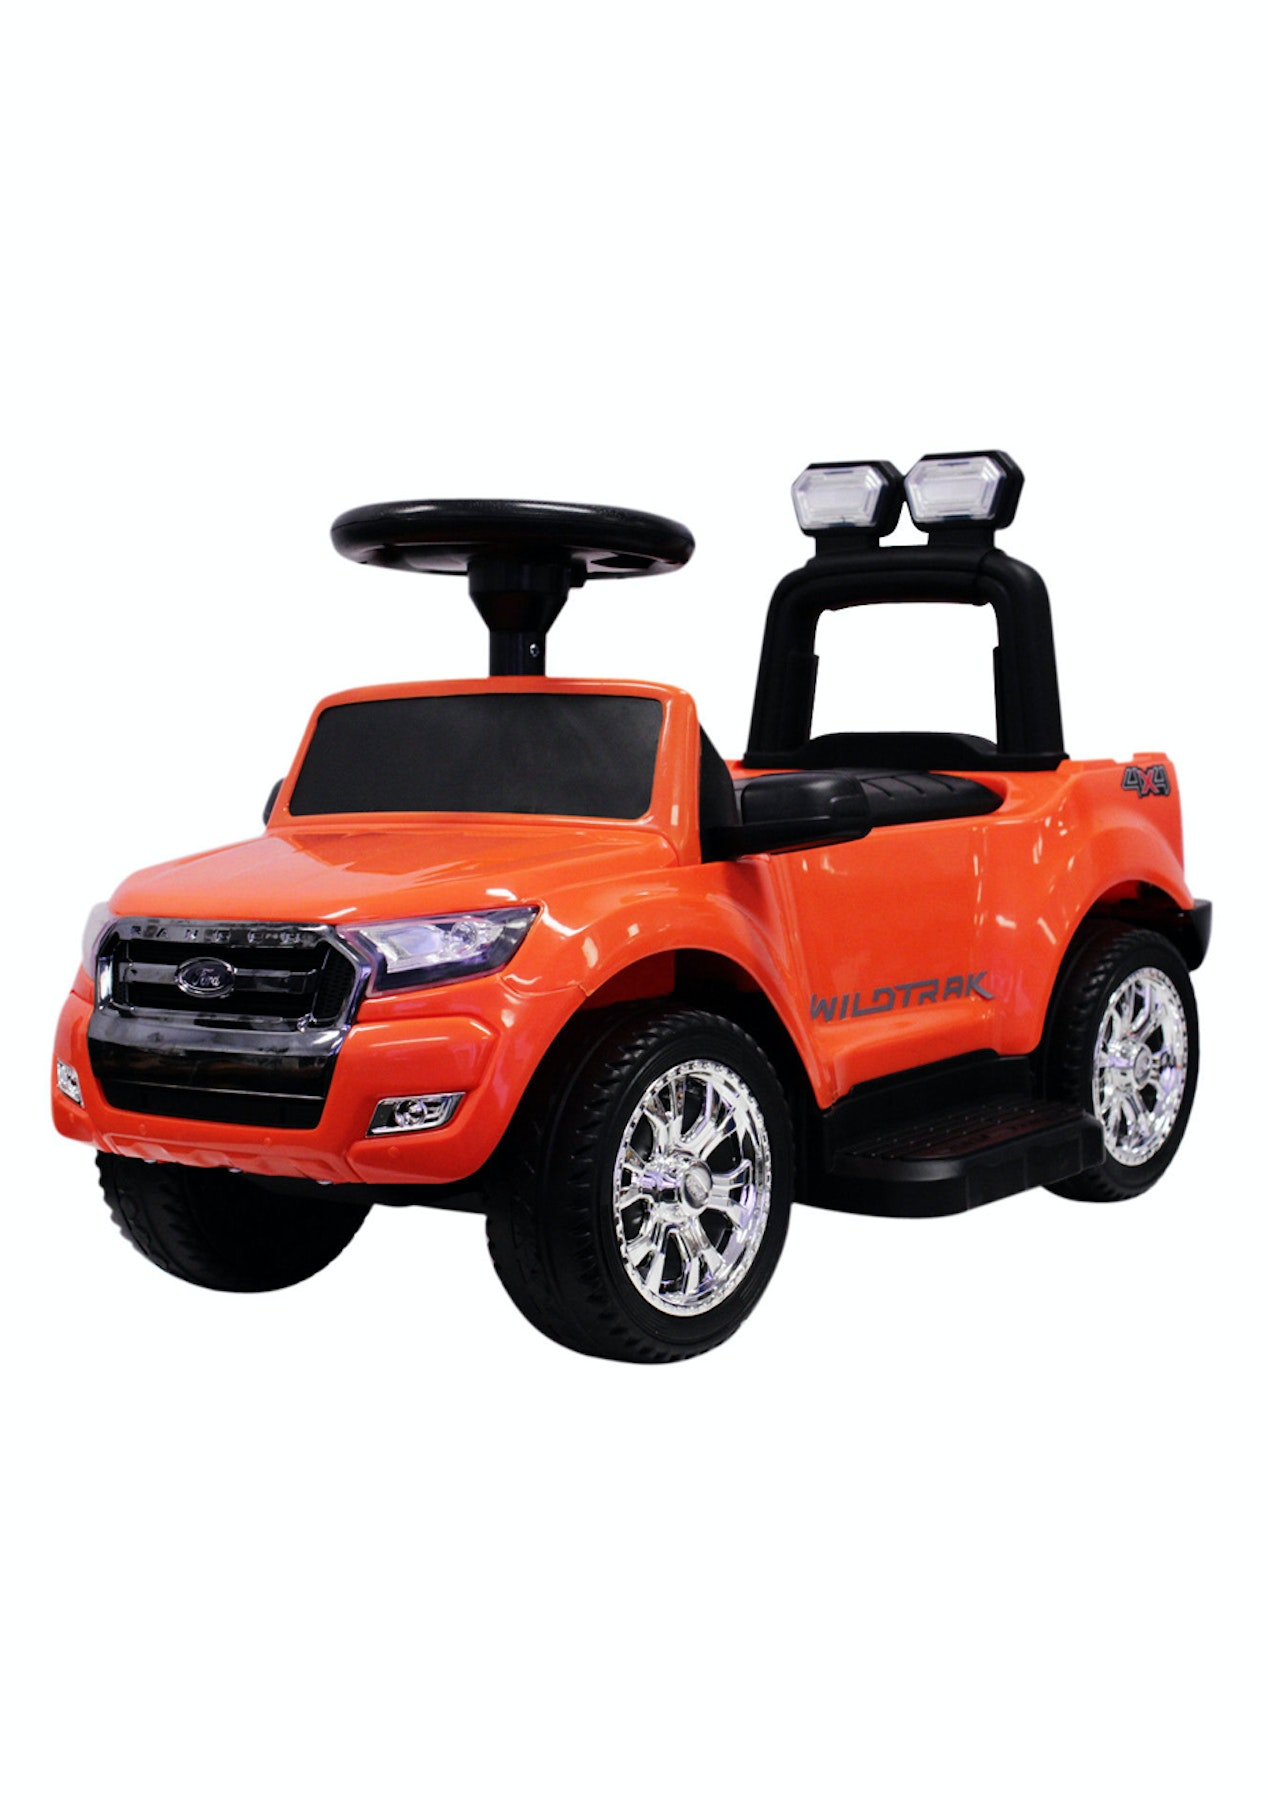 Ford Ranger Licensed Kids Ride On Car - 3 Months to Xmas - The Toy on 1932 ford golf cart, ford raptor golf cart, chevy corvette golf cart, range rover golf cart, ford mustang golf cart, ford think neighbor golf cart, 67 mustang golf cart, ford model t golf cart, chevy camaro golf cart, chevy pickup golf cart, ford pickup golf cart, ford bronco golf cart, 1949 ford golf cart, ford f250 golf cart, ford shelby golf cart, ford electric golf cart, hummer h3 golf cart, hummer h2 golf cart, pickup truck golf cart, dodge challenger golf cart,